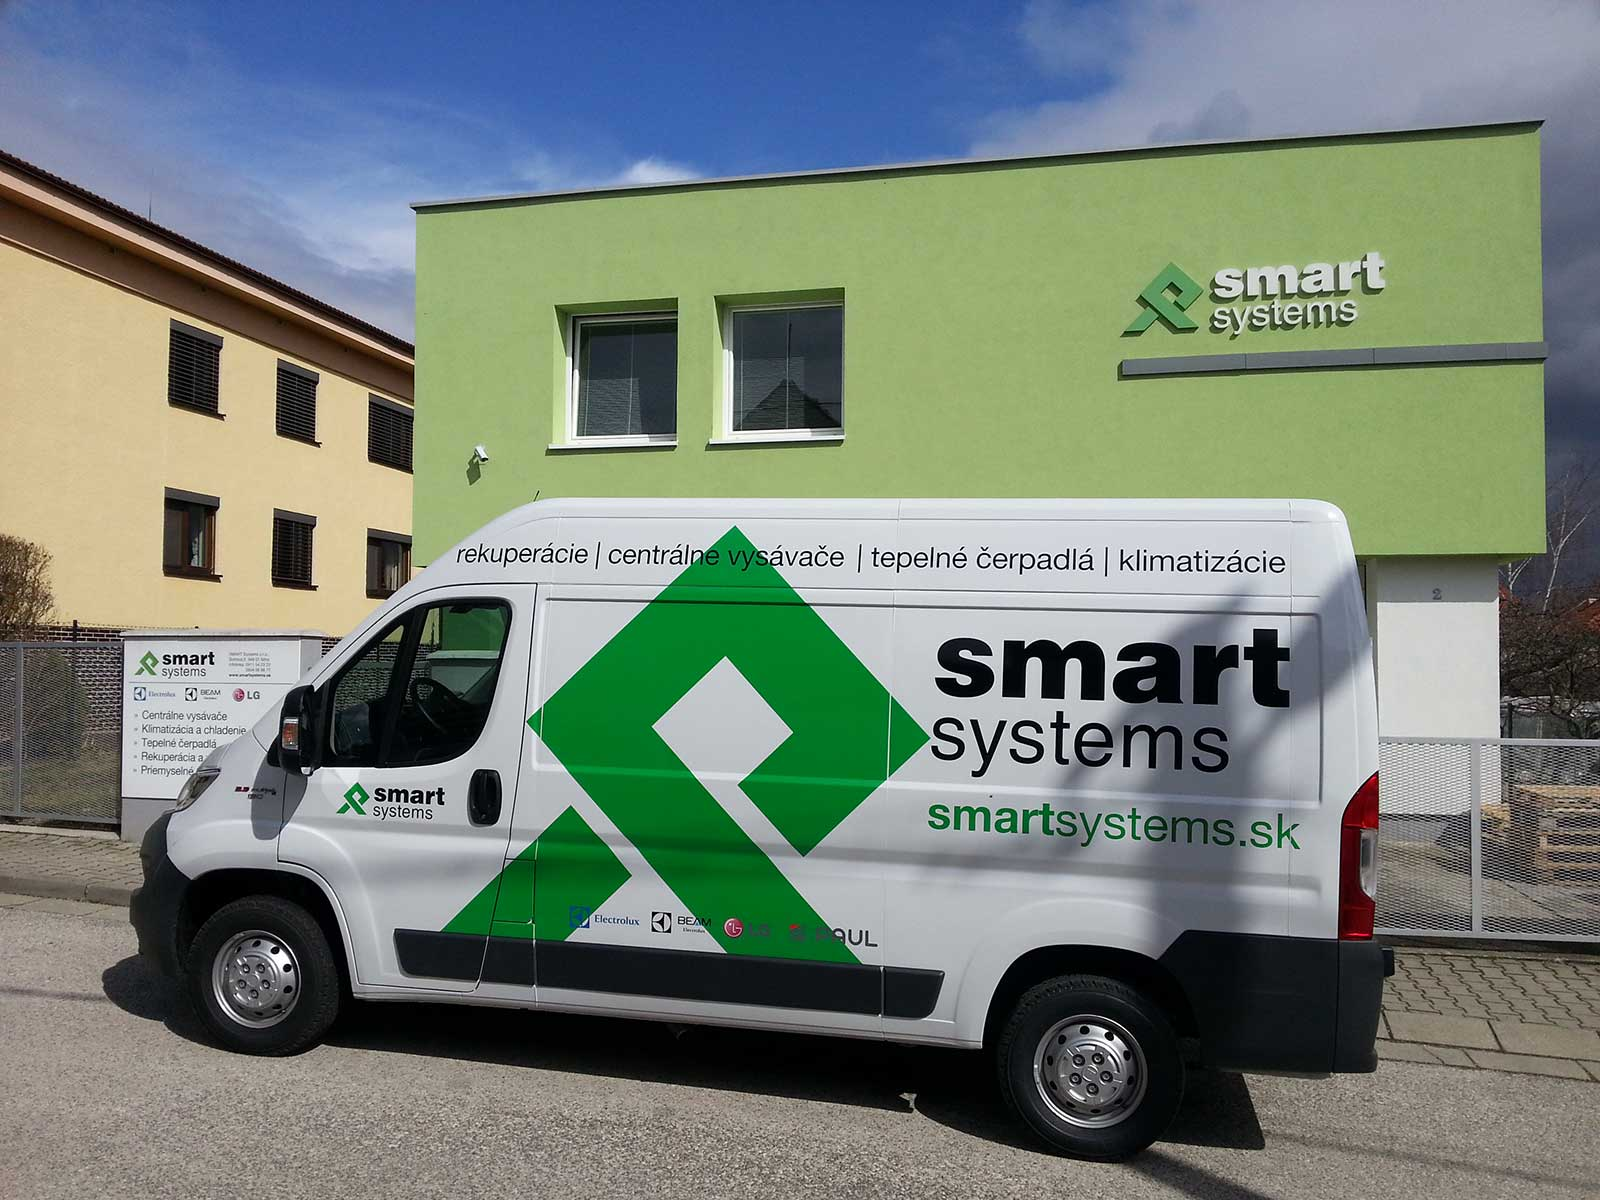 smart-systems-foto-01